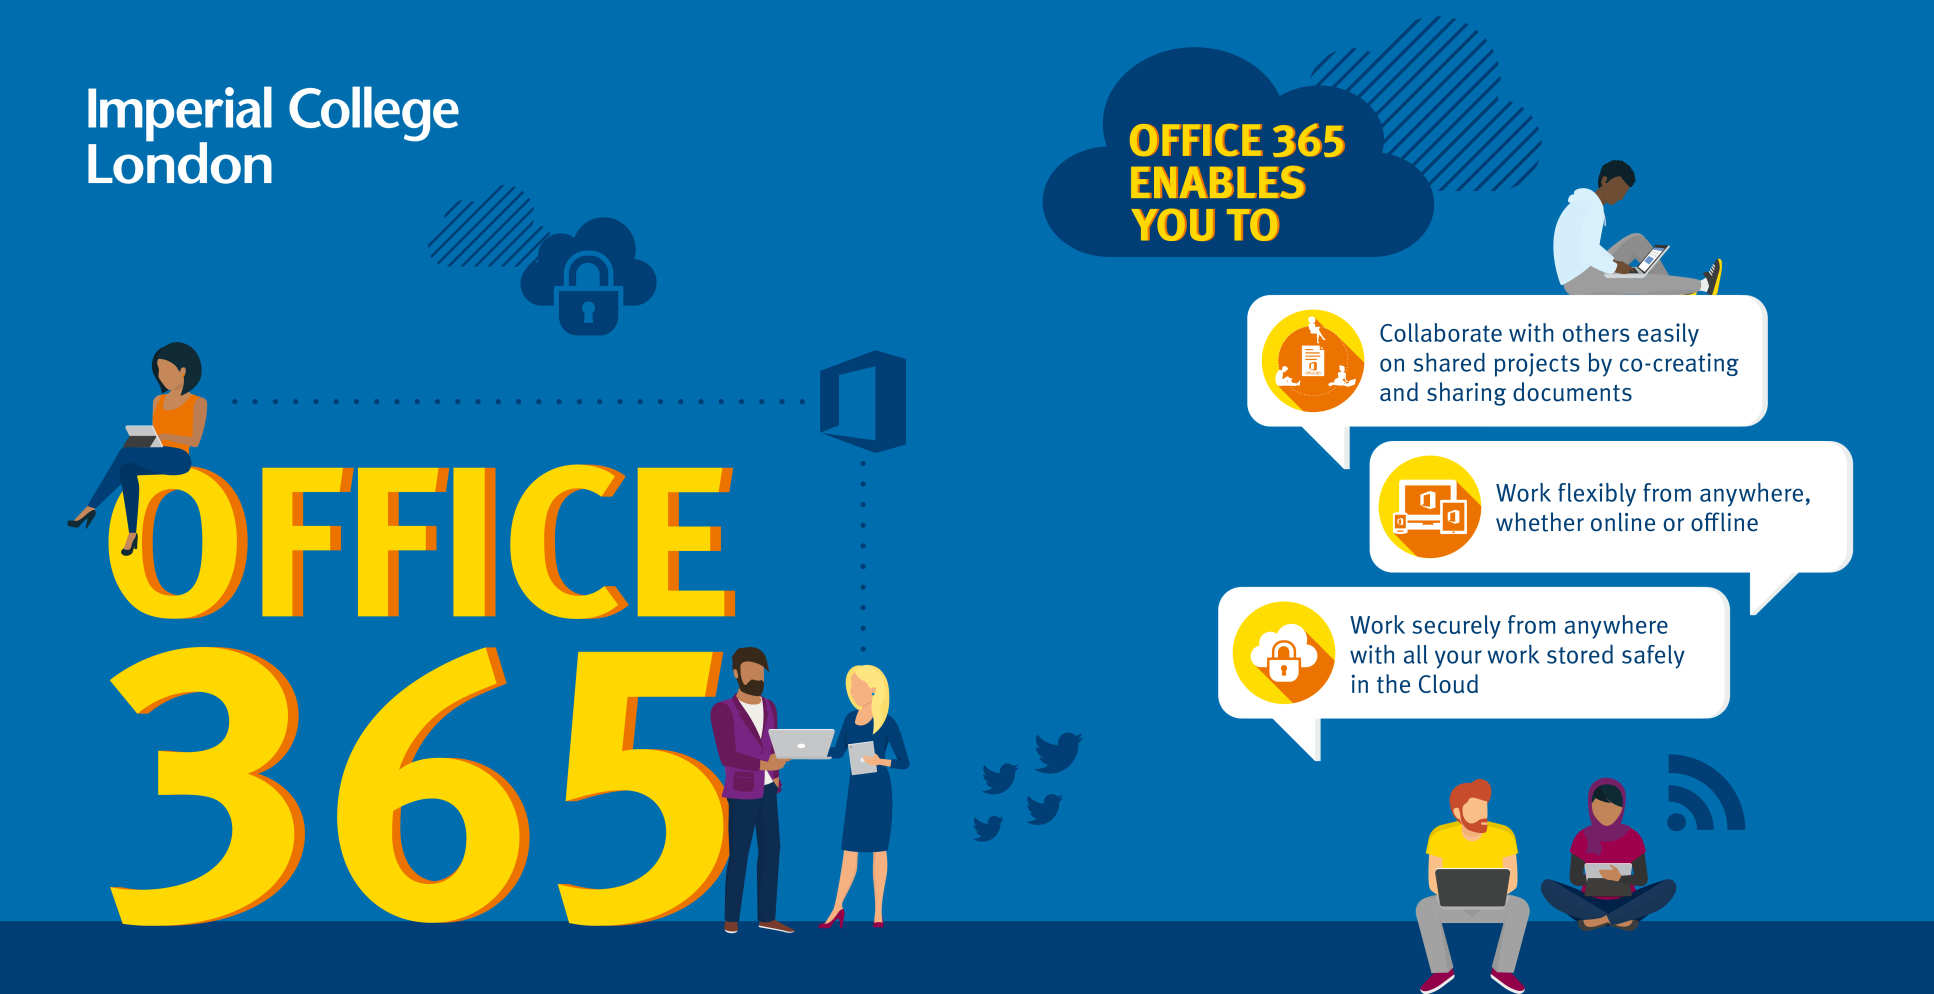 Office 365 enables you to